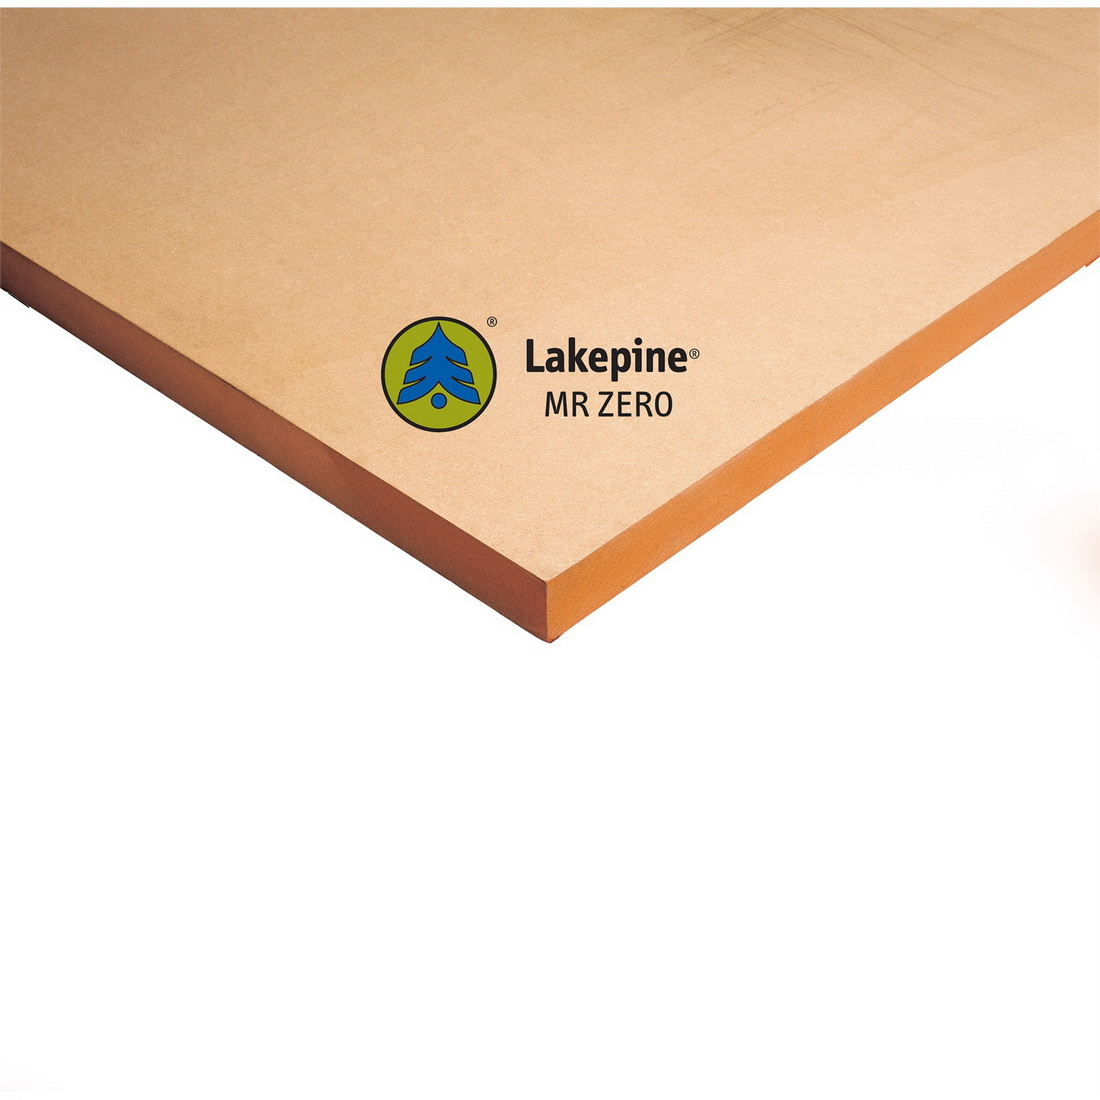 Lakepine Light Panel 2464 x 1245 x 18 mm MDF 8605016